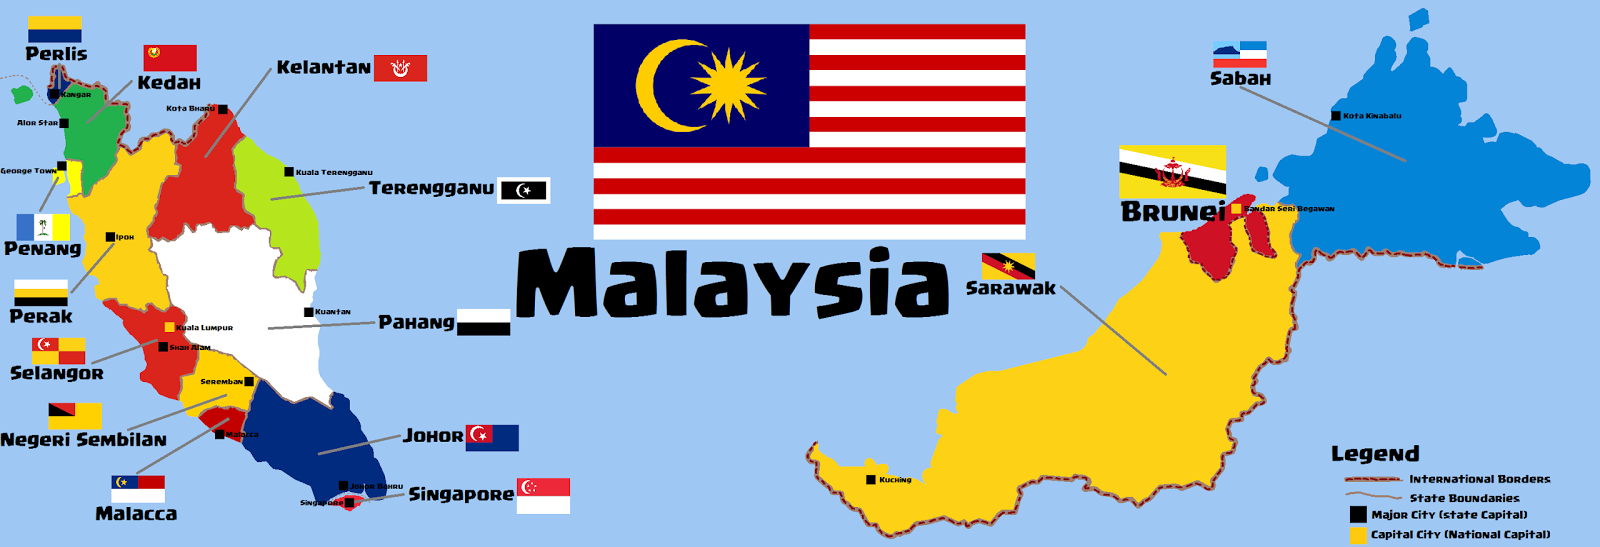 Map of Malaysia Merger Post Separation Peace Transquility